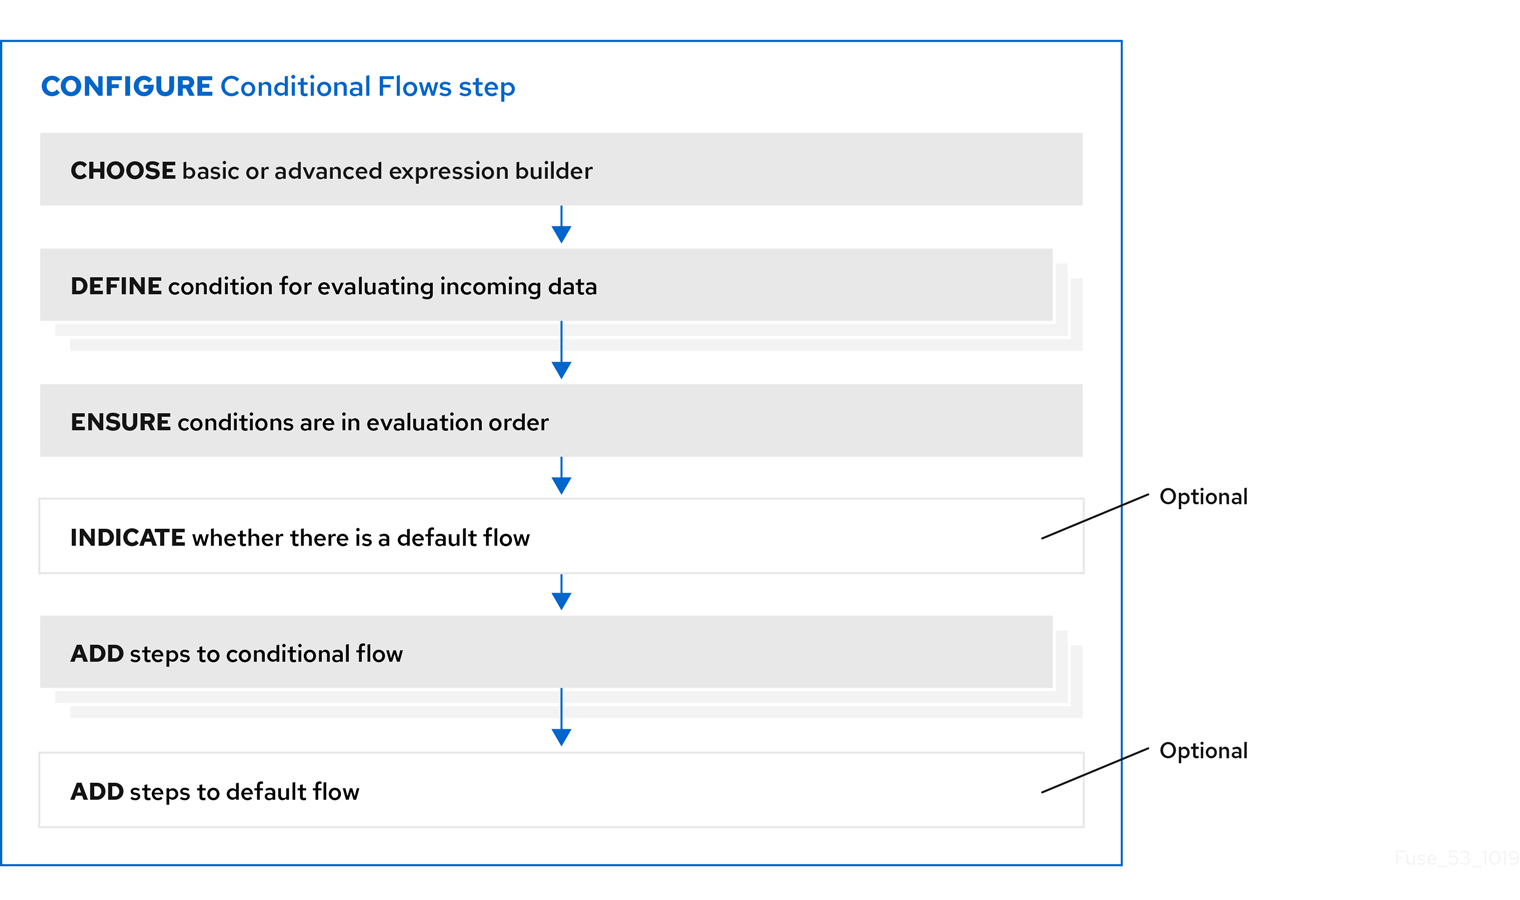 Workflow for configuring Conditional Flows step